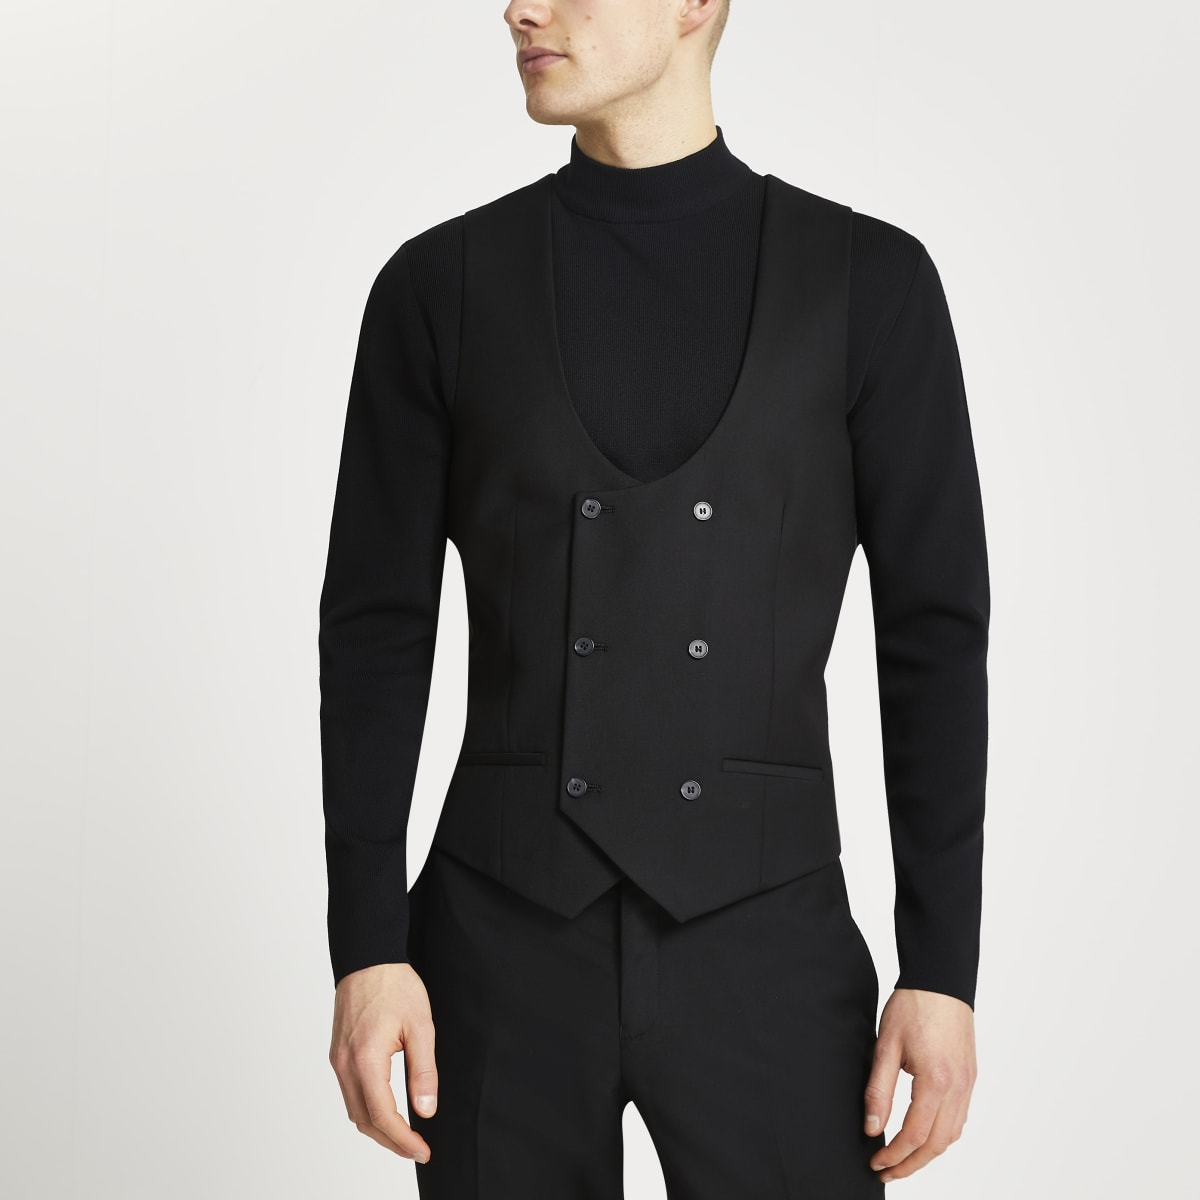 Black double breasted suit waistcoat